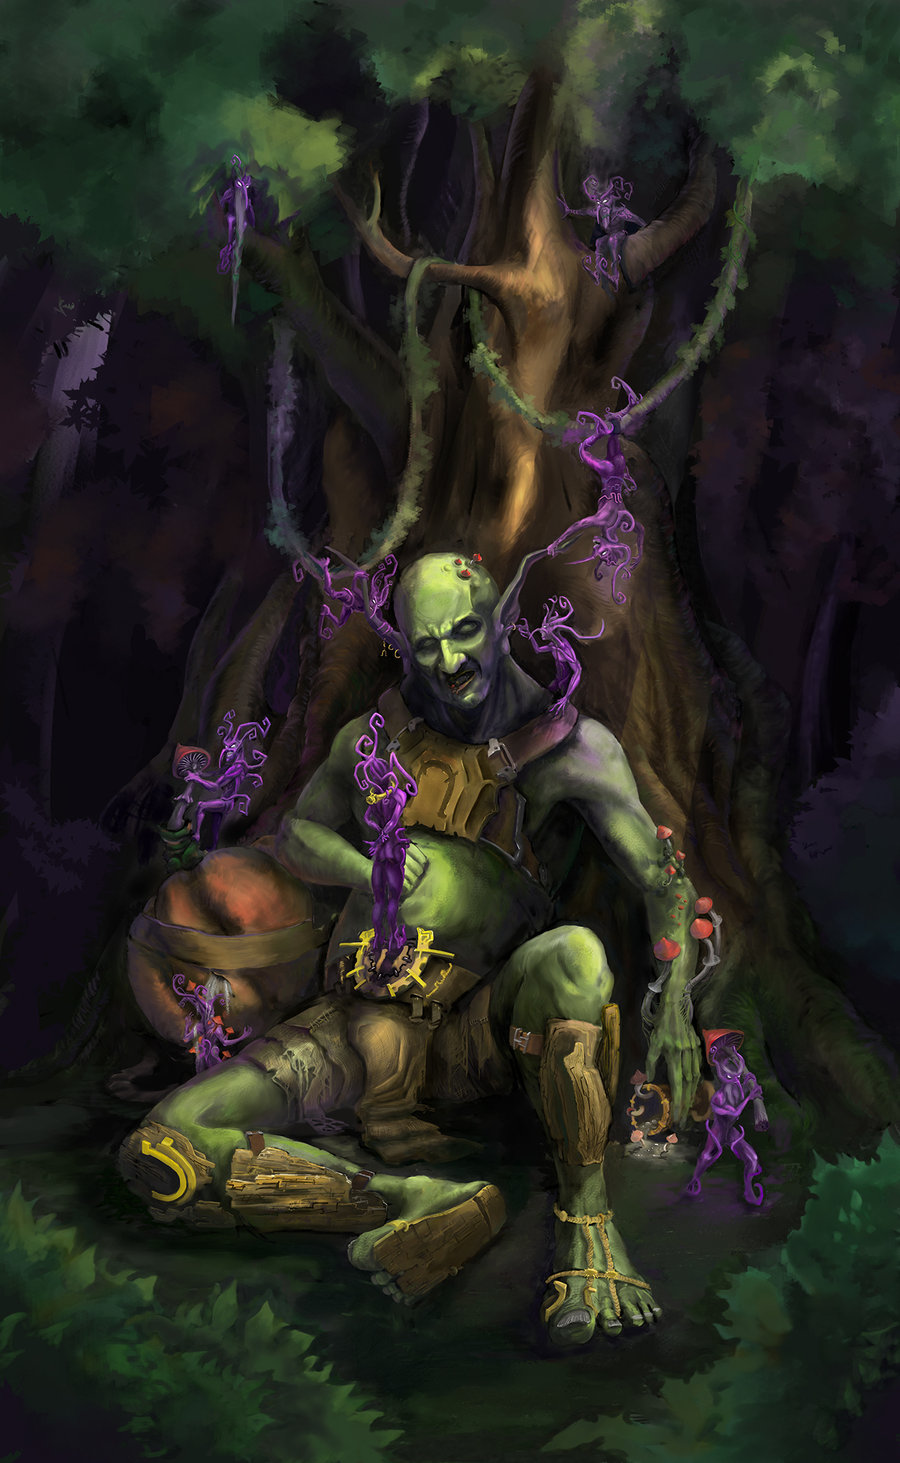 goblin__fairies_and_mushroom_by_irvast-d5h9gzh.jpg